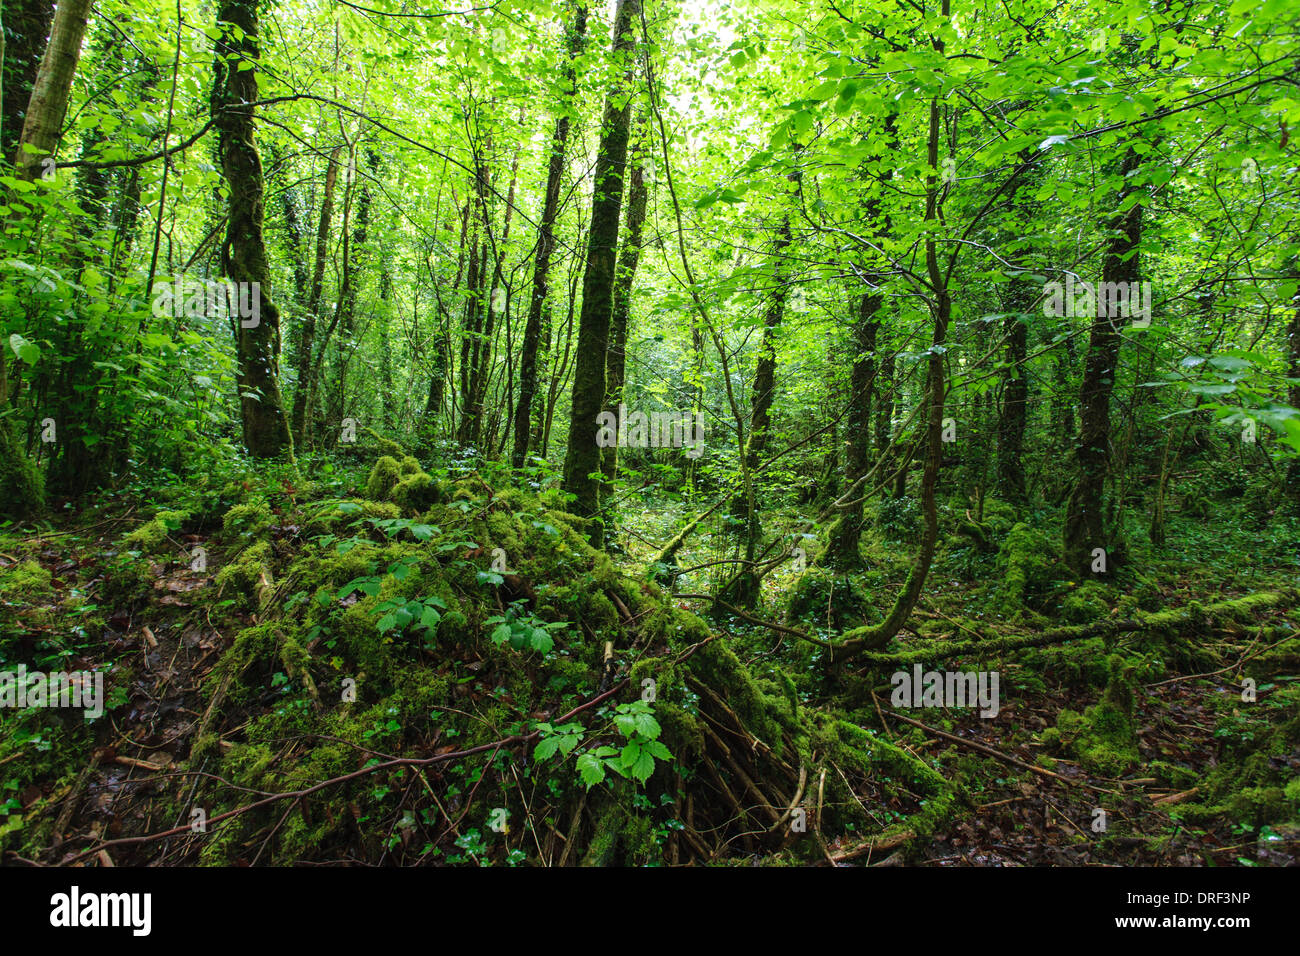 hidden forest glade at The Burren, County Clare, Ireland - Stock Image